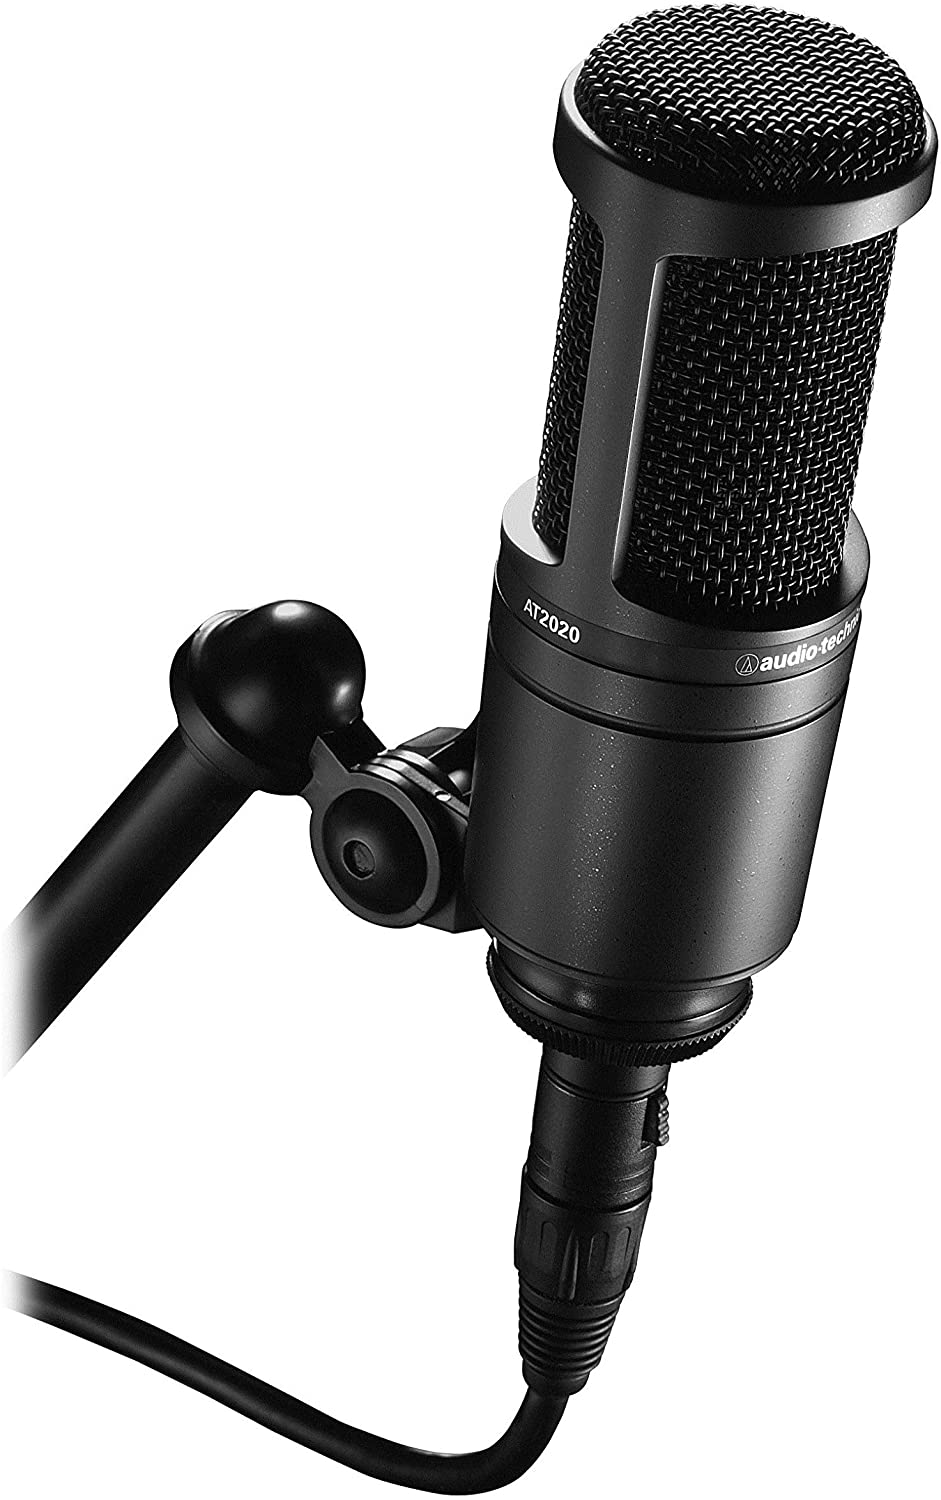 Audio-Technia AT2020 Cardioid Condenser Microphone